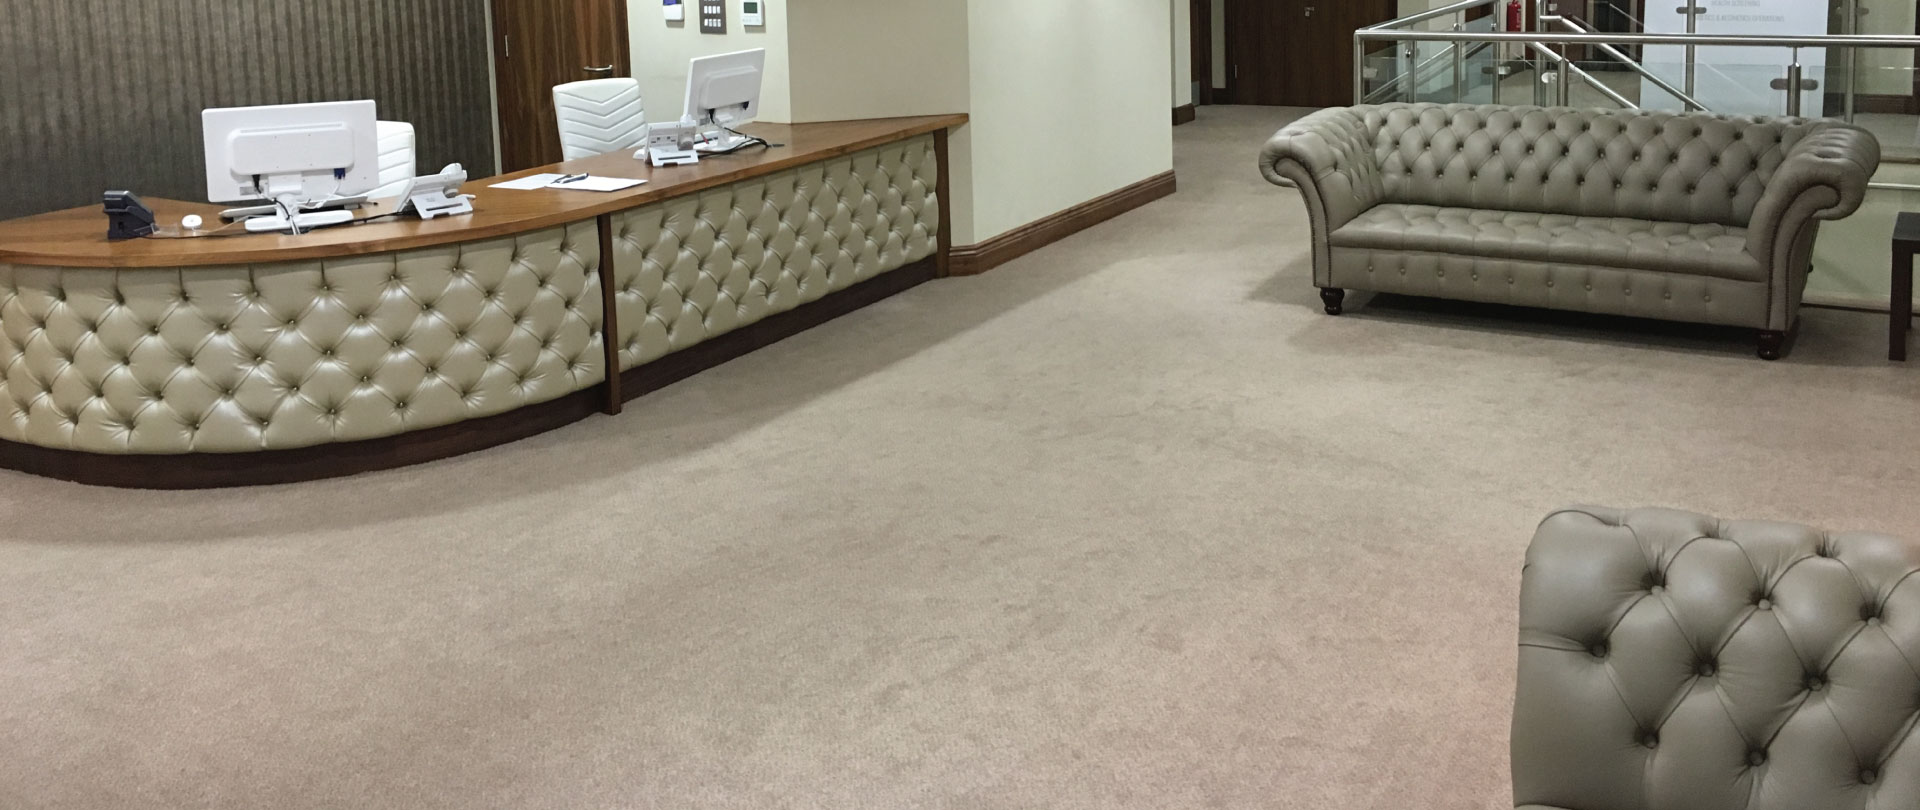 A professional flooring service that fits around your business needs